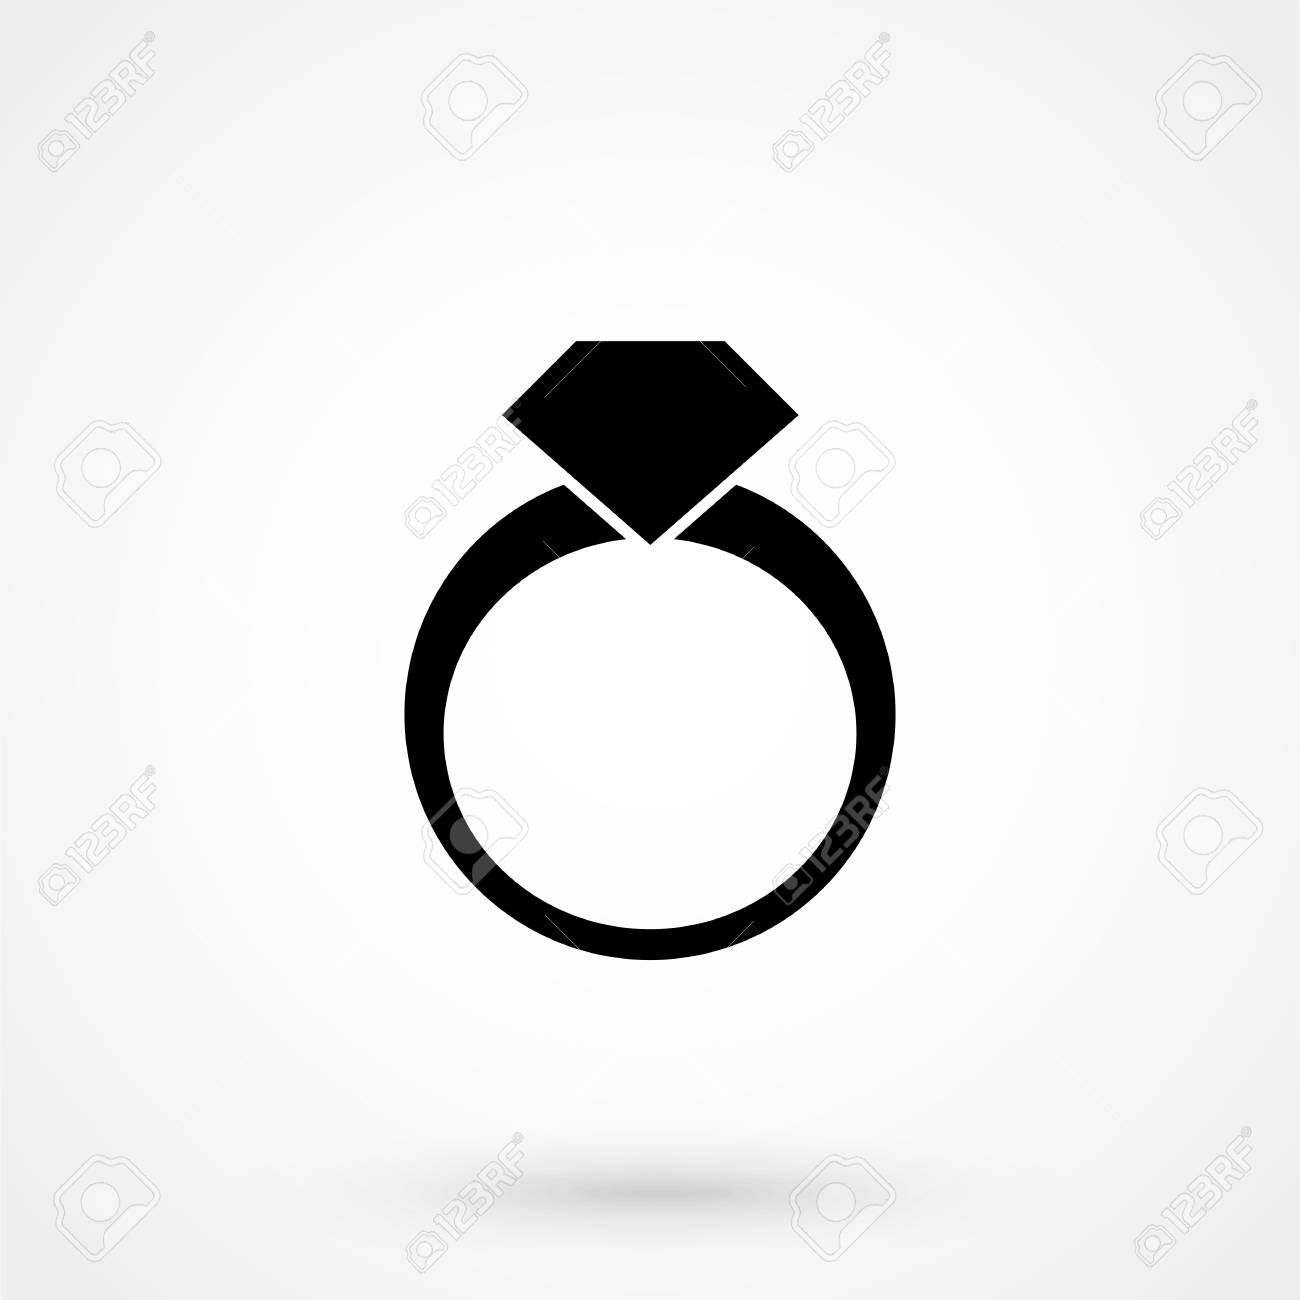 Gray Flat Wedding Ring Icon Isolated On White Royalty Free Cliparts